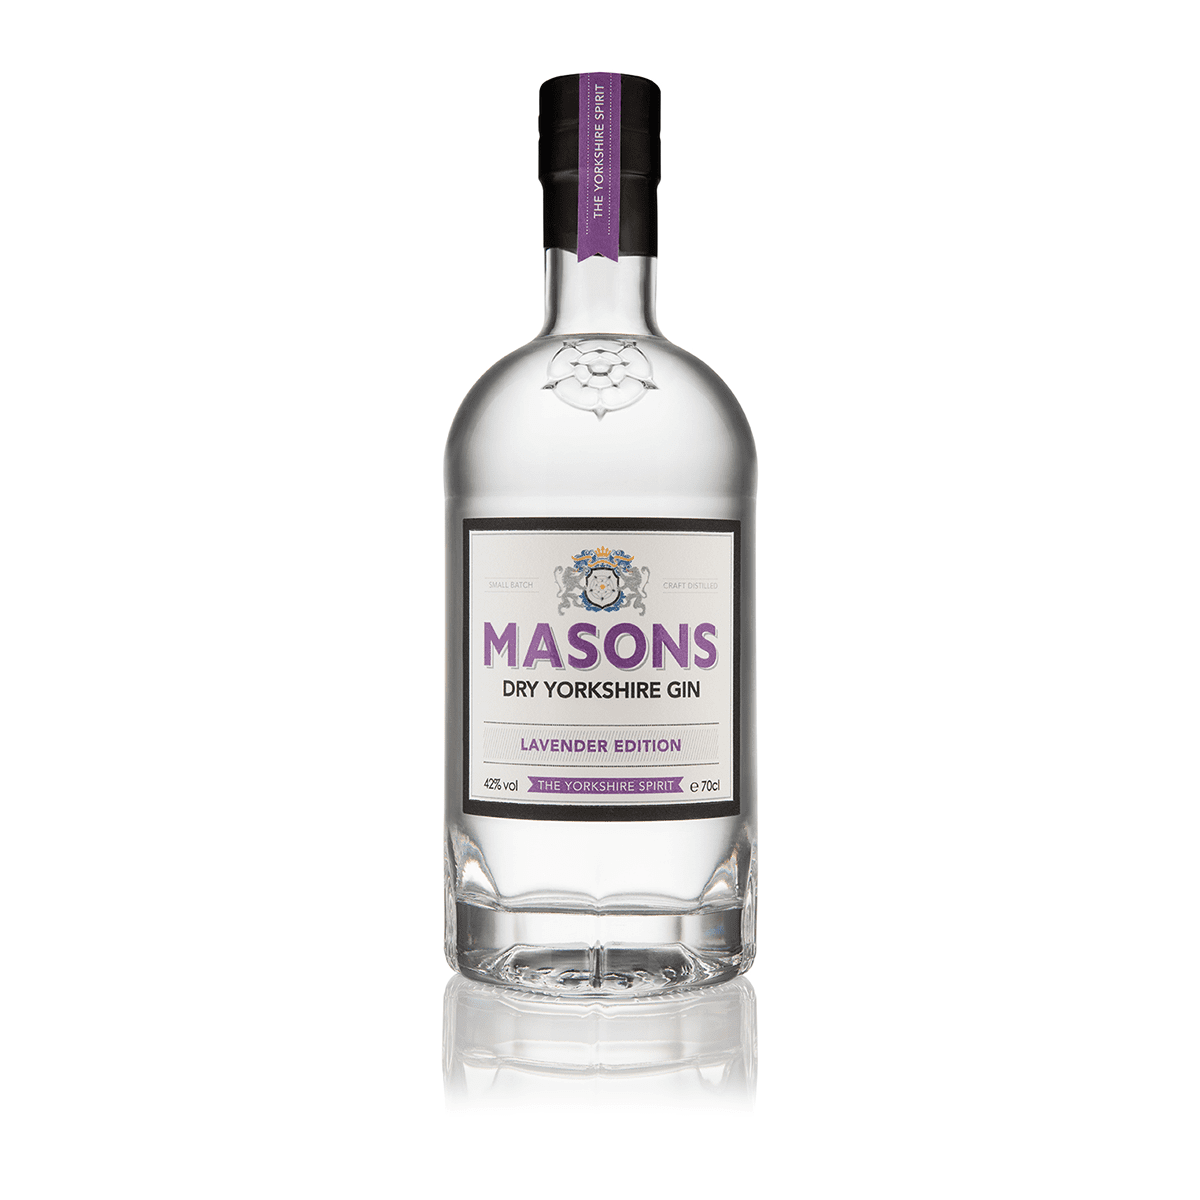 Masons Dry Yorkshire Gin – Lavender Edition